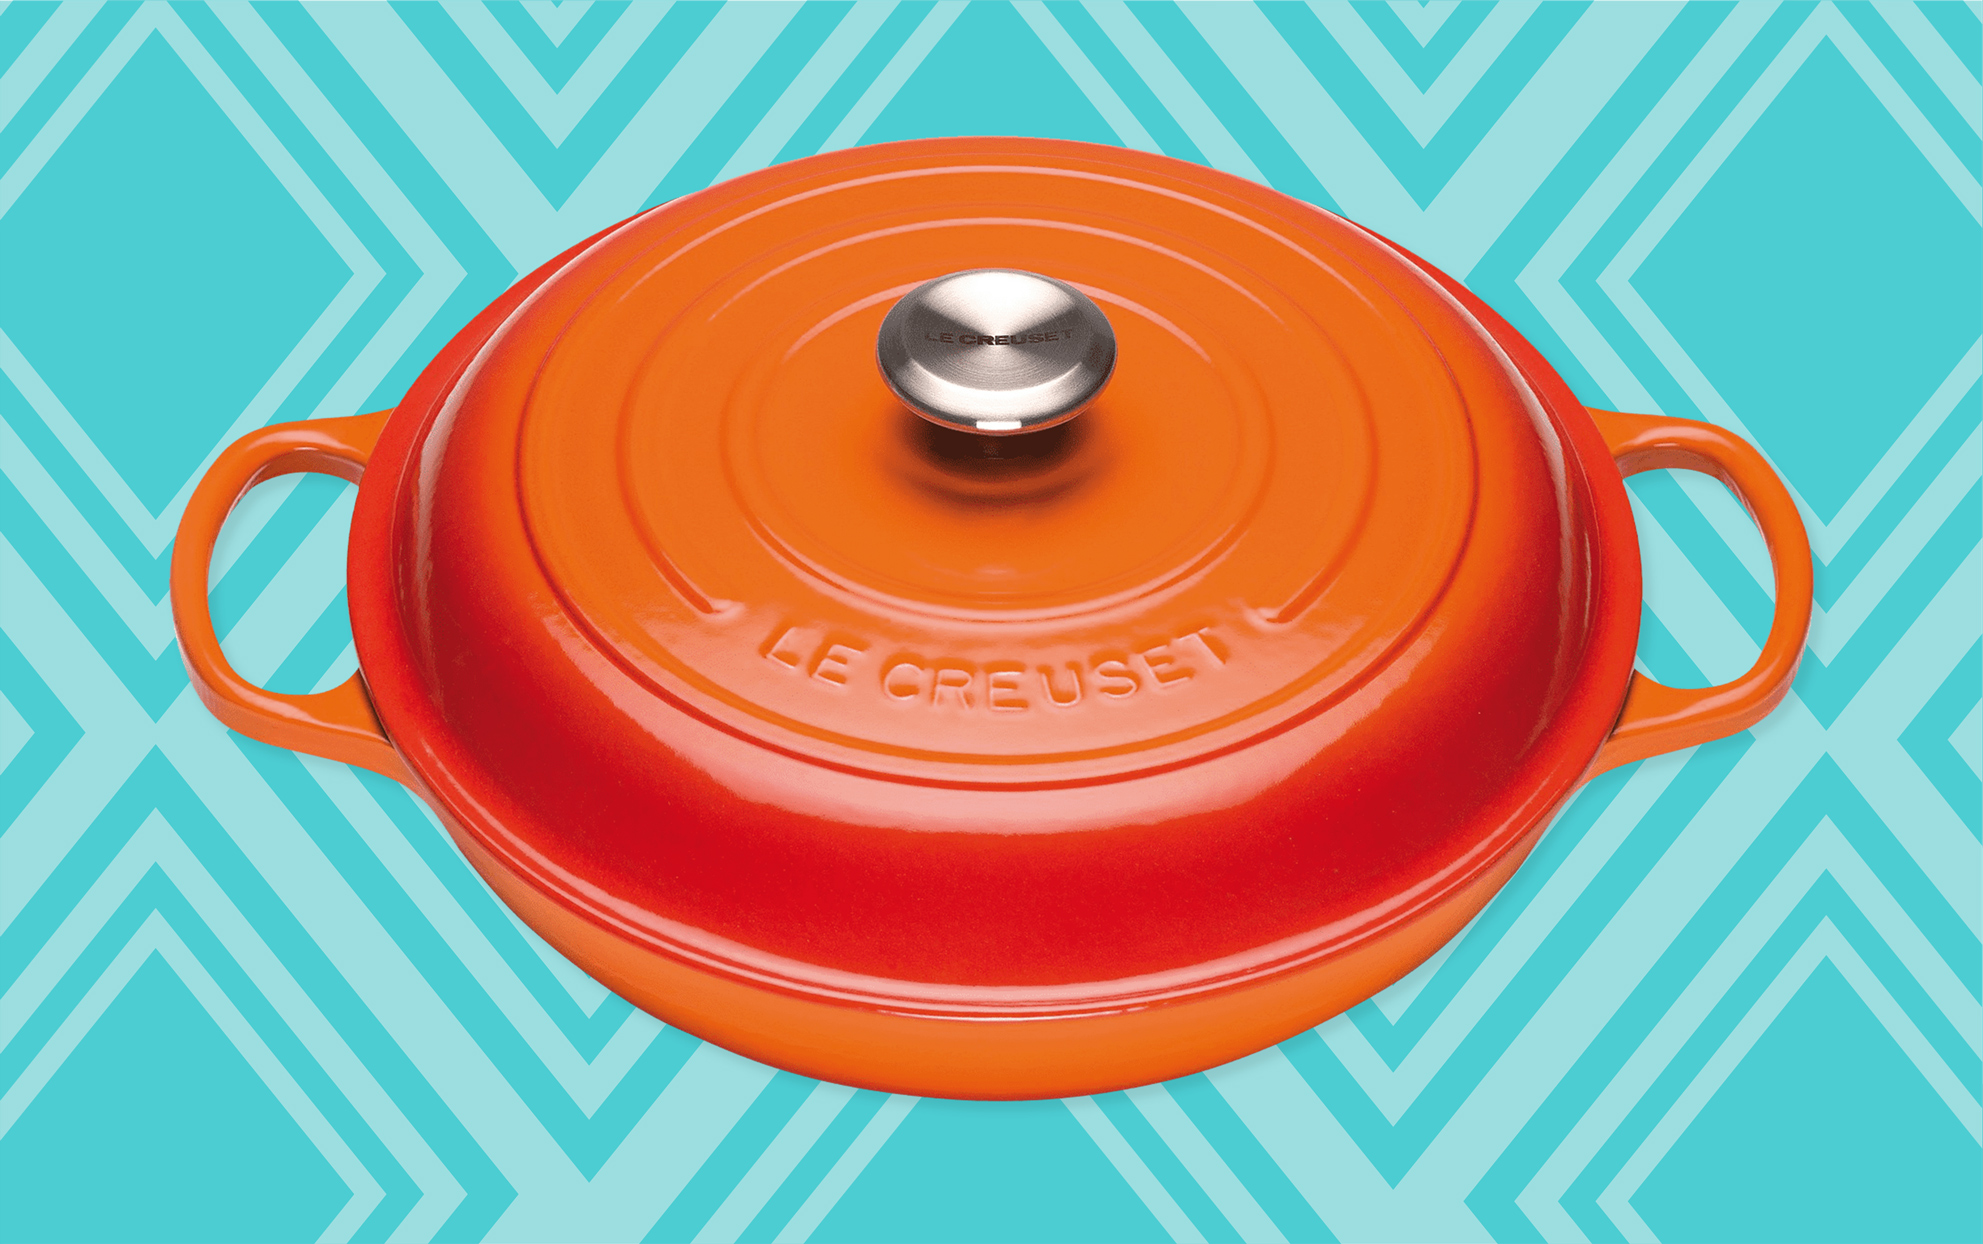 Le Creuset flame colored cast iron braiser on a teal background